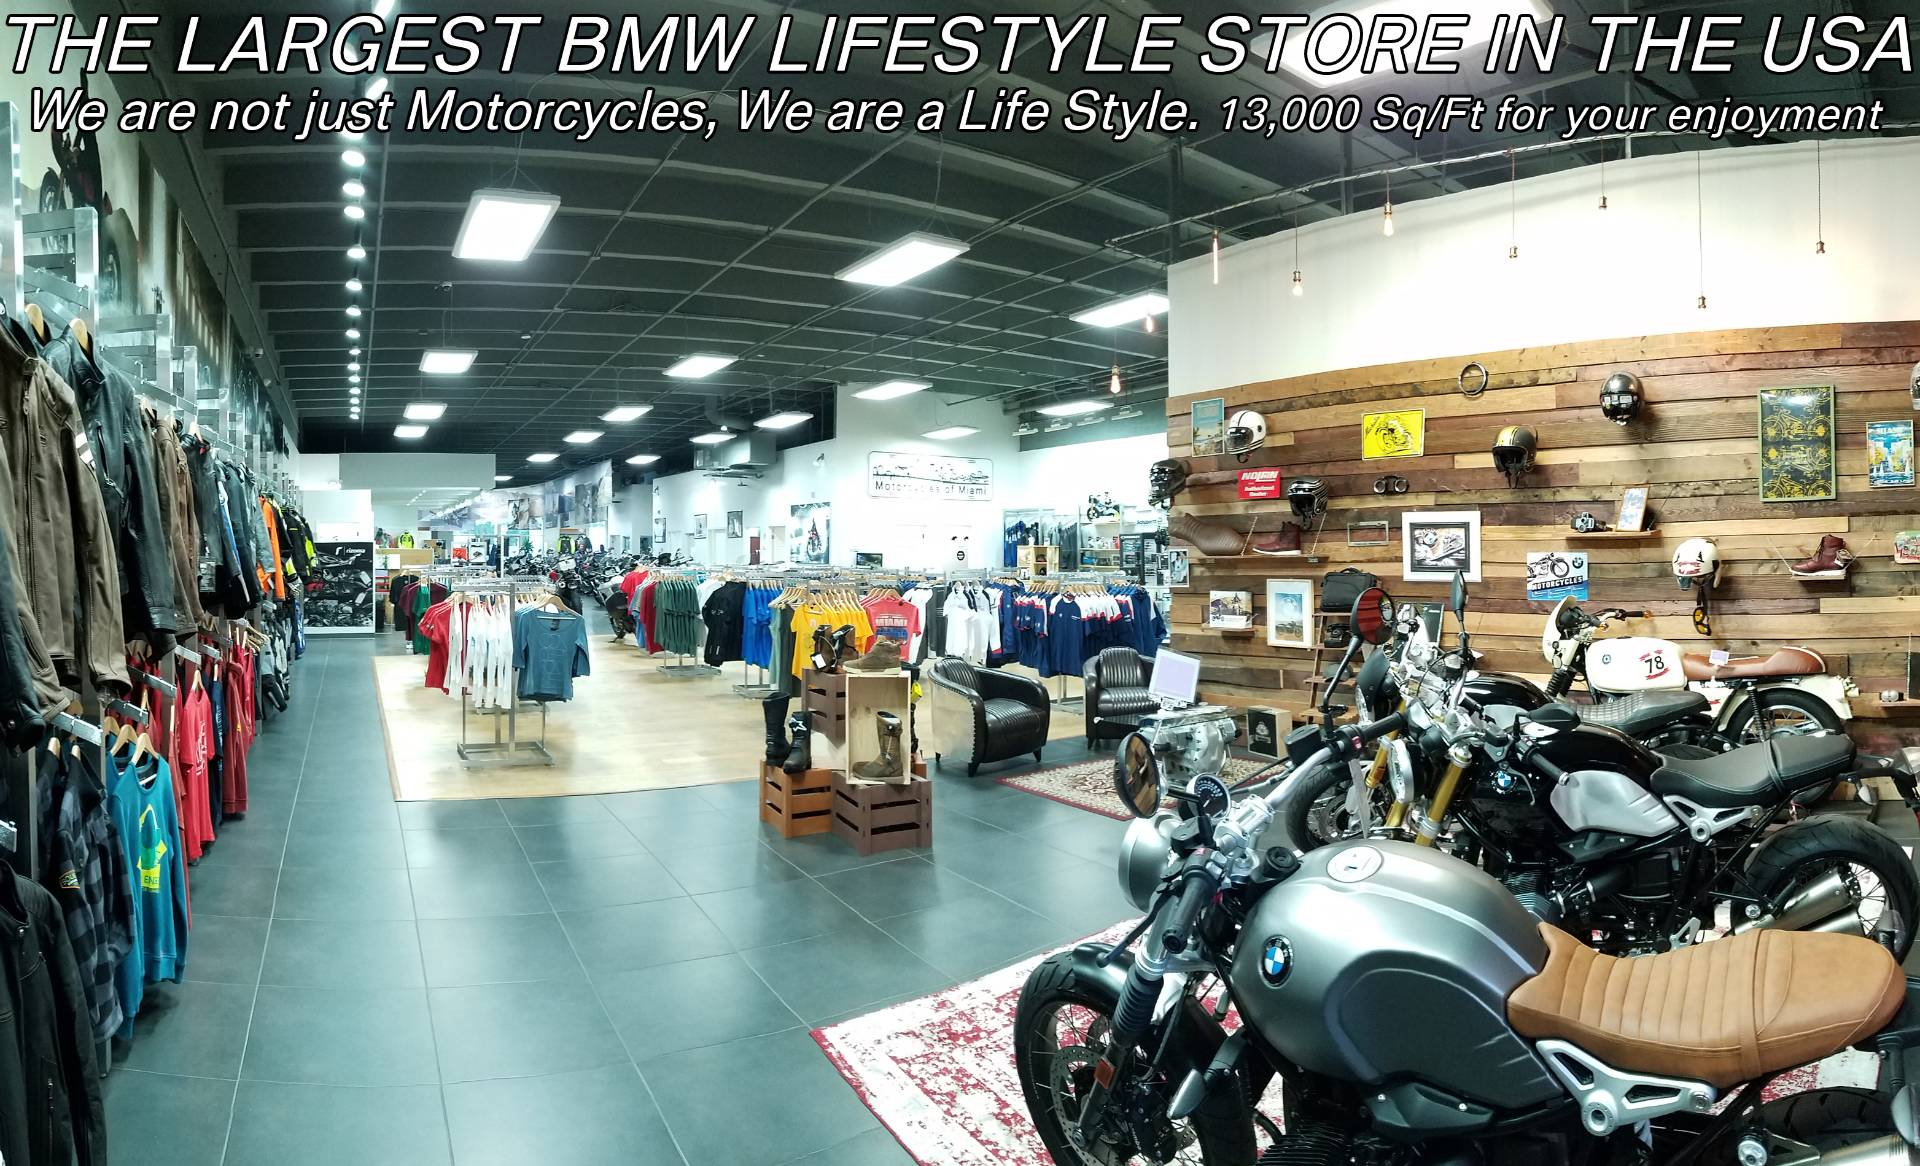 BMW Motorcycles of Miami, Motorcycles of Miami, Motorcycles Miami, New Motorcycles, Used Motorcycles, pre-owned. #BMWMotorcyclesOfMiami #MotorcyclesOfMiami. - Photo 22